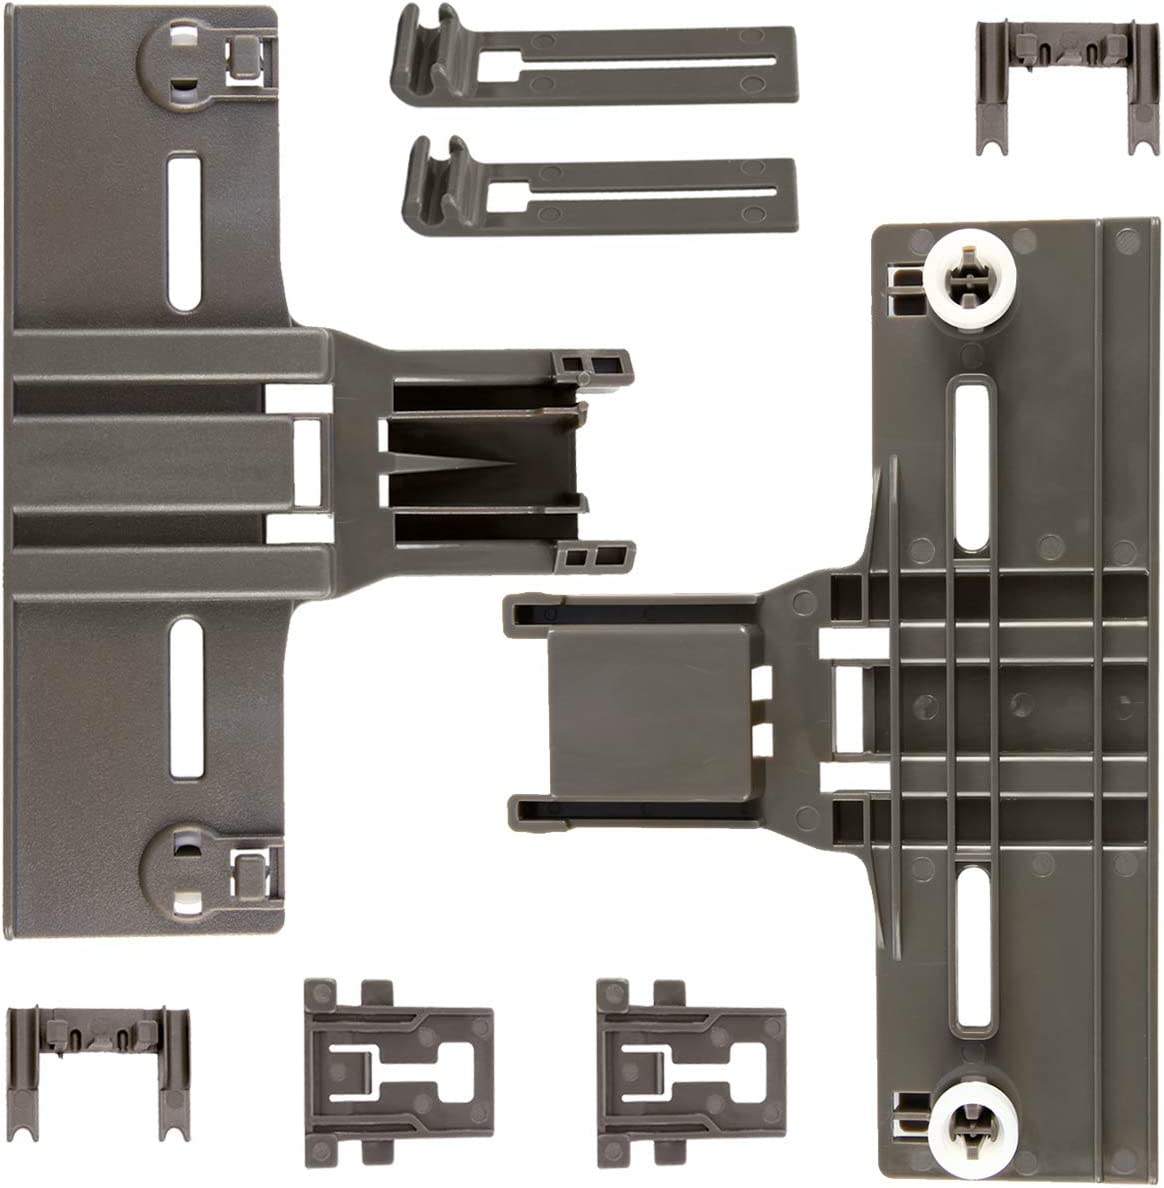 8 Packs Dishwasher parts upper rack W10350376(2) W10195840(2) W10195839(2) W10250160(2) for kitchenaid Kenmore elite kitchen Aid whirlpool kenmore Dishwasher Replaces W10712394 AP5272176 PS3497383